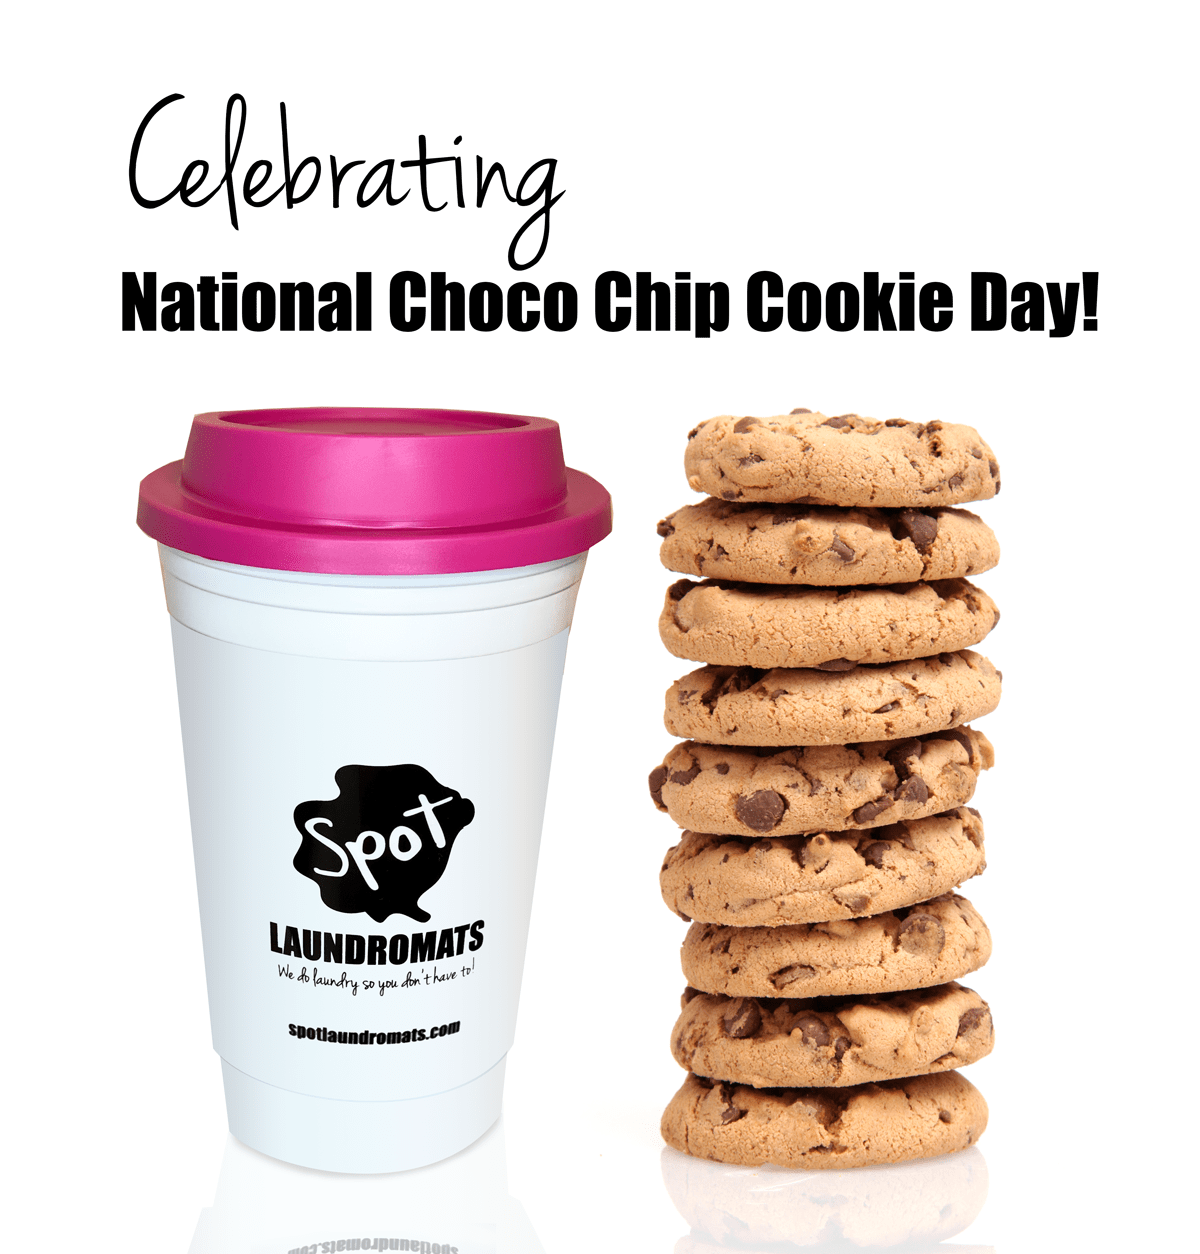 National Chocolate Chip Cookie Day at Spot Laundromats